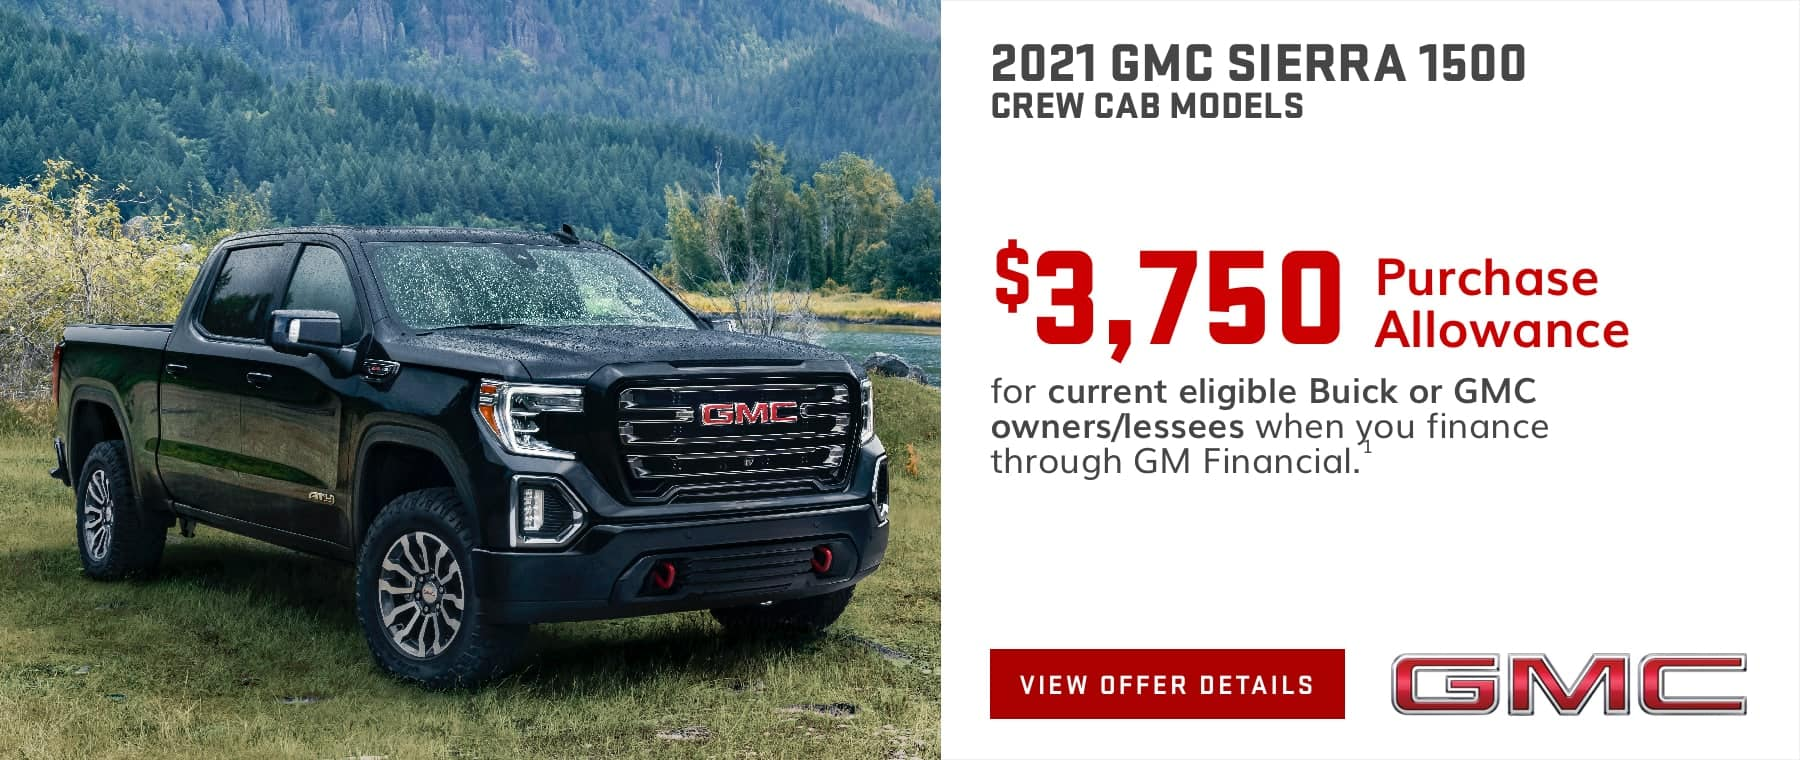 $3,750 Purchase Allowance for current eligible Buick or GMC owners/lessees when you finance through GM Financial.1